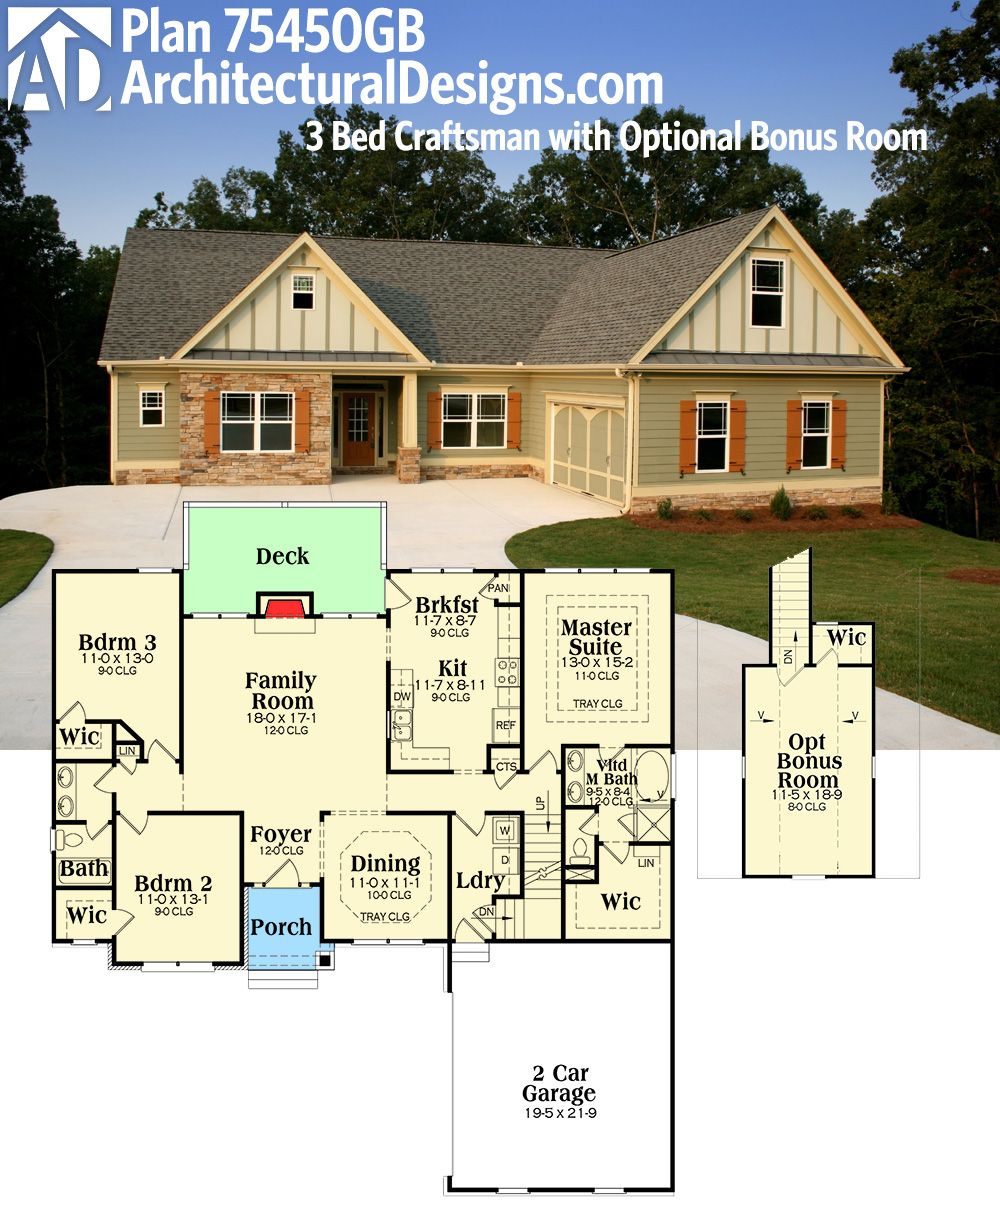 plan 75450gb 3 bed craftsman with optional bonus room On house plans with room over garage